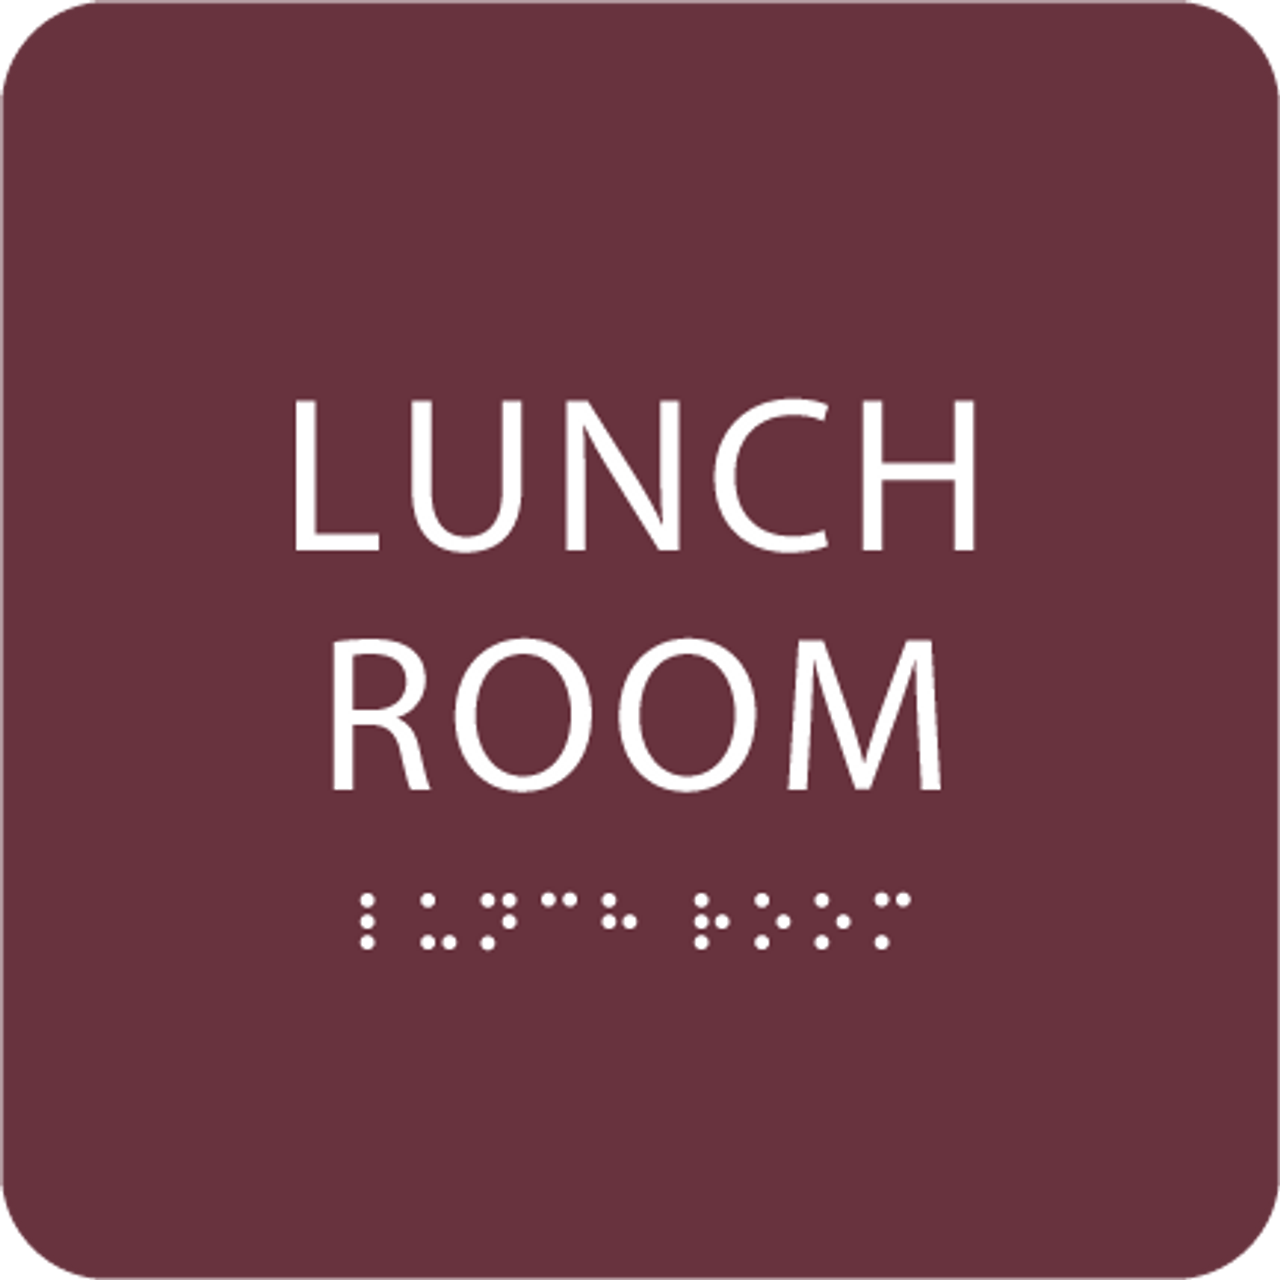 Burgundy Lunch Room ADA Sign